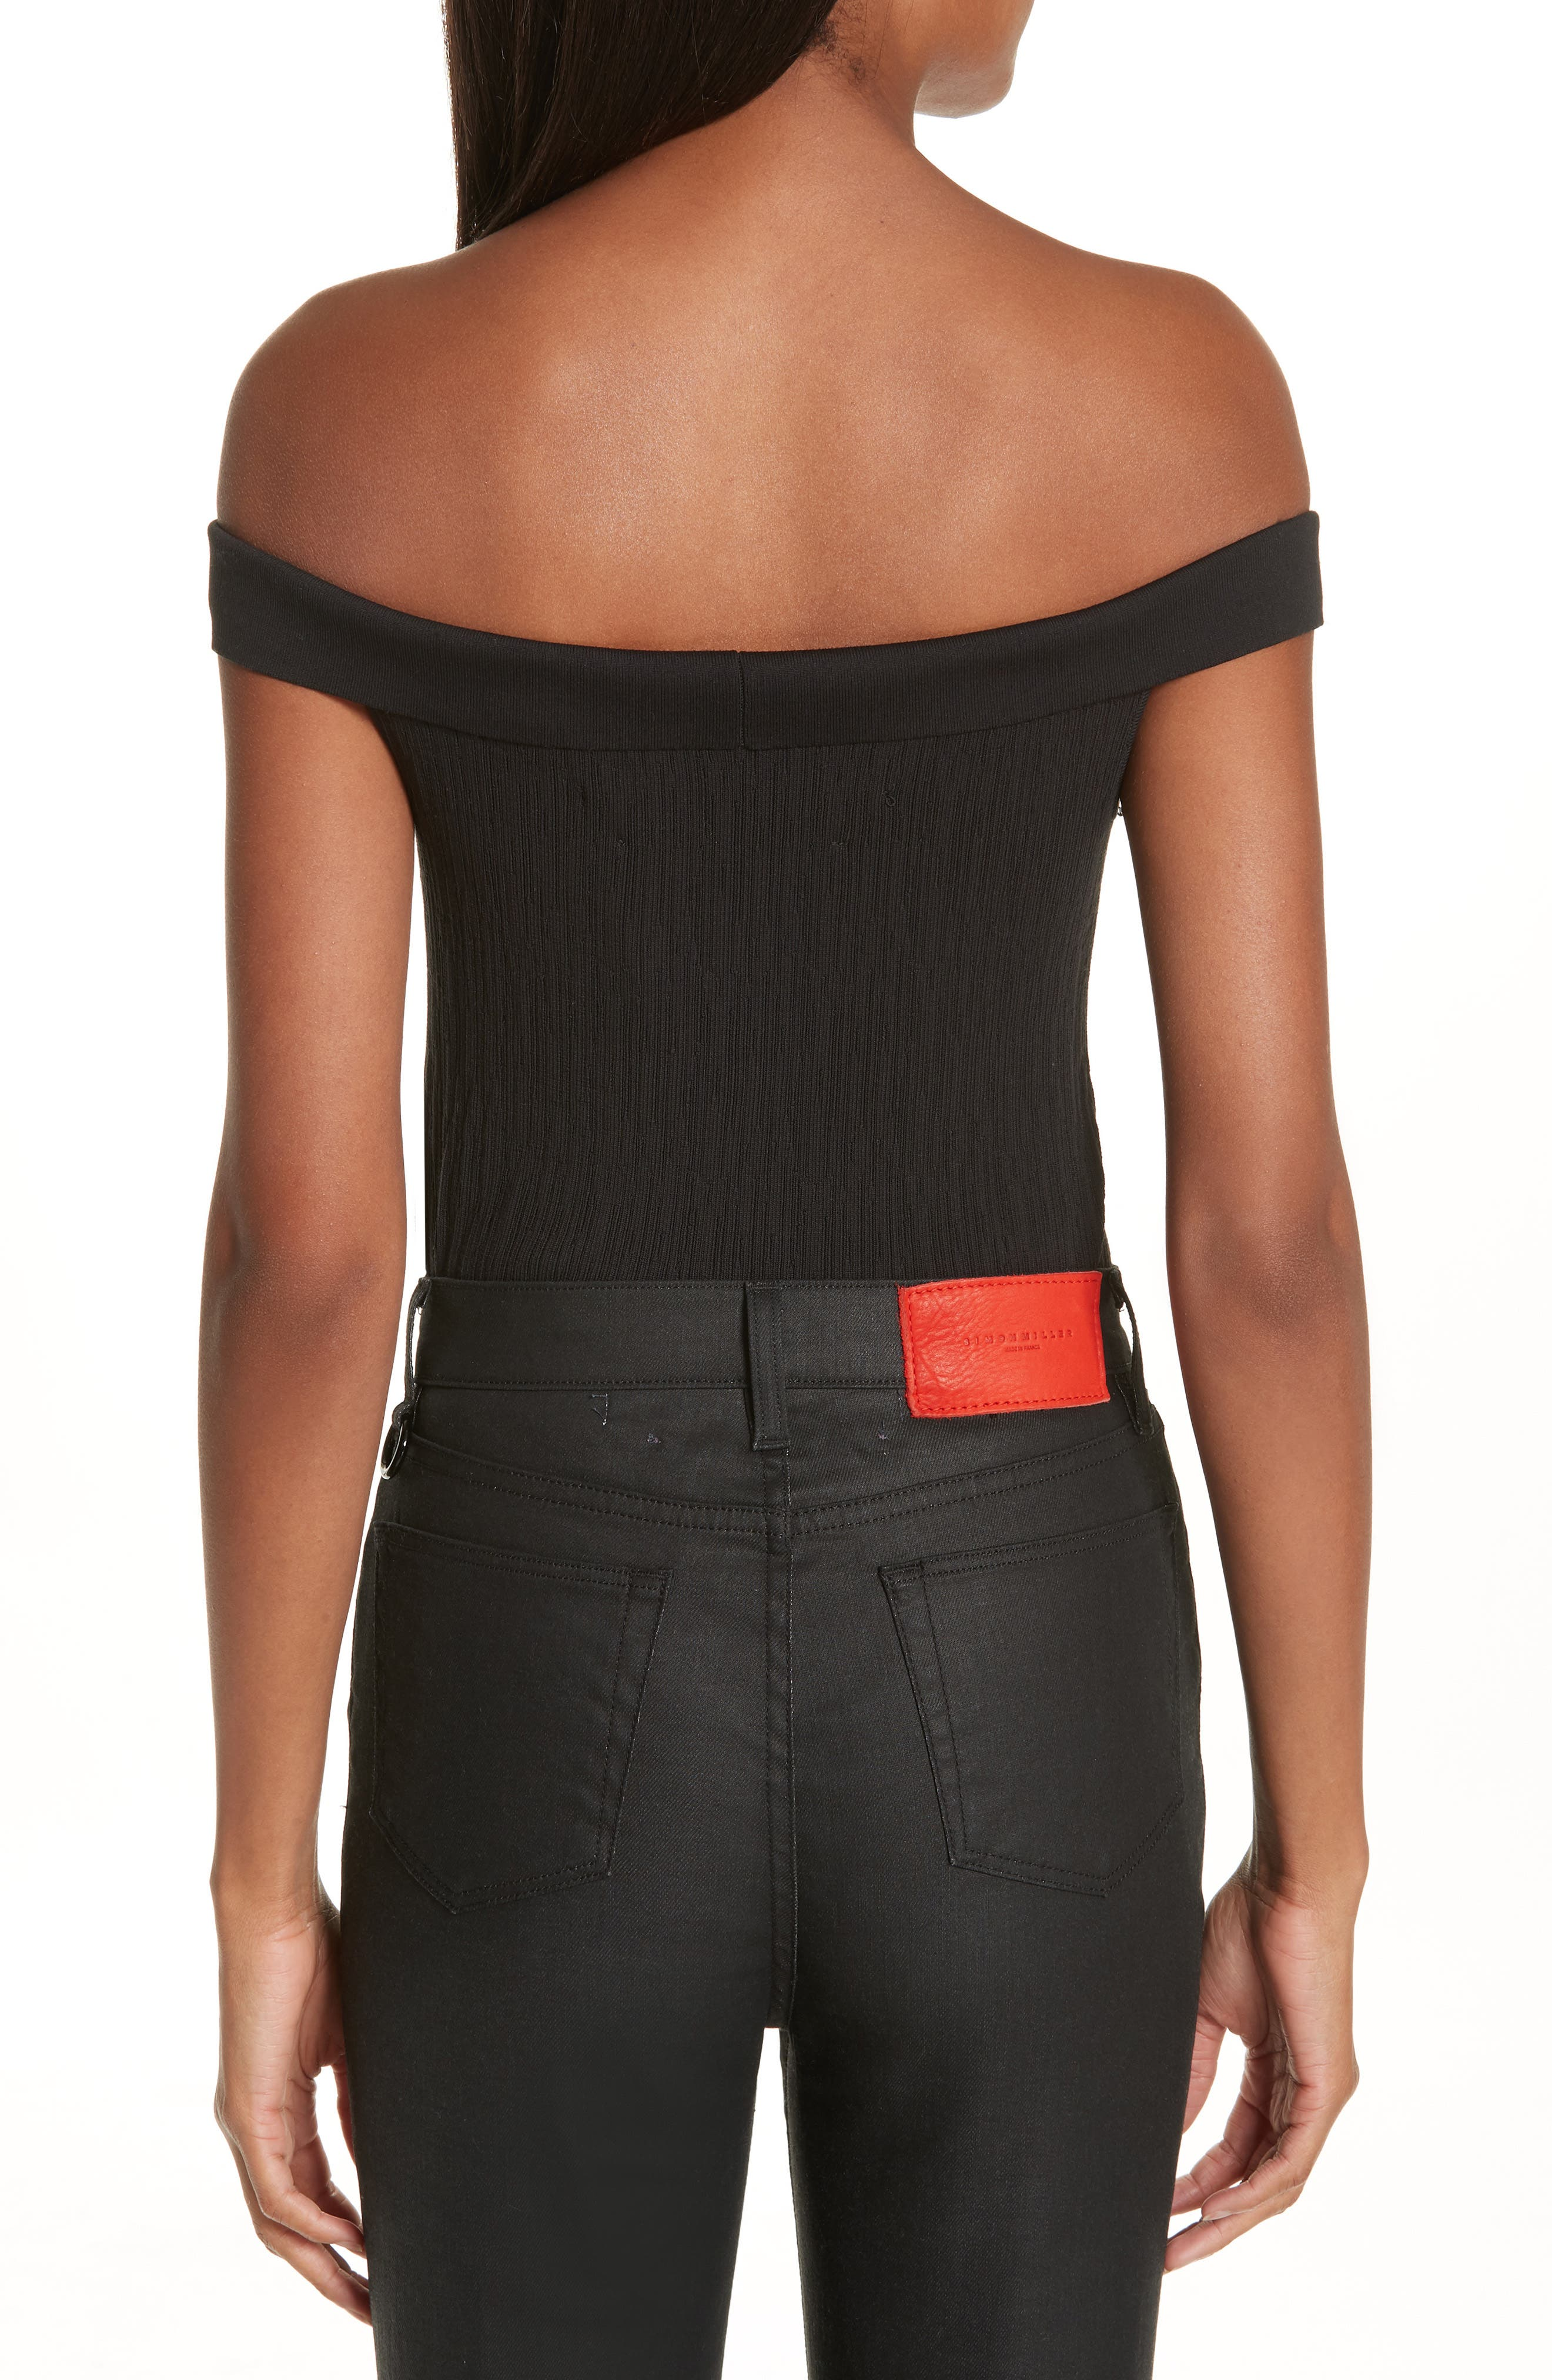 x Paramount Grease Ribbed Off the Shoulder Top,                             Alternate thumbnail 2, color,                             DANNY BLACK